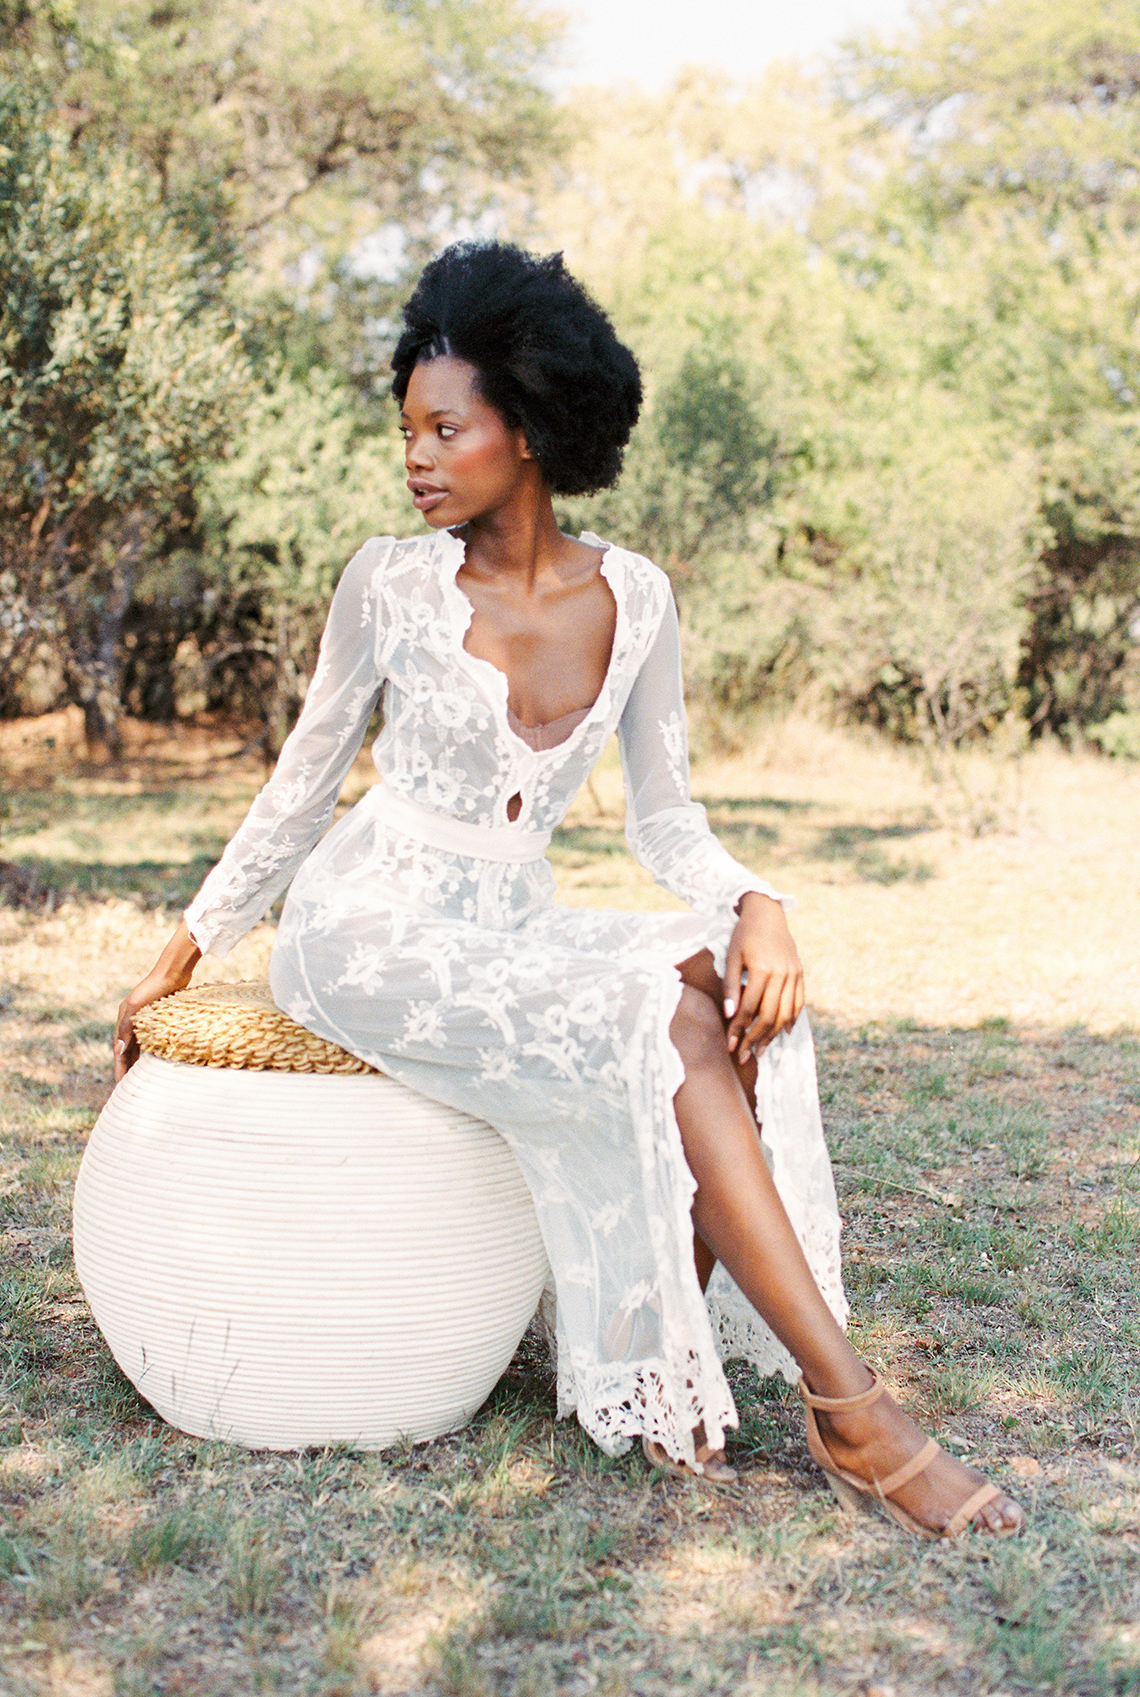 Ultra-Stylish Wedding Inspiration From The South African Bush – Nina Wernicke 1